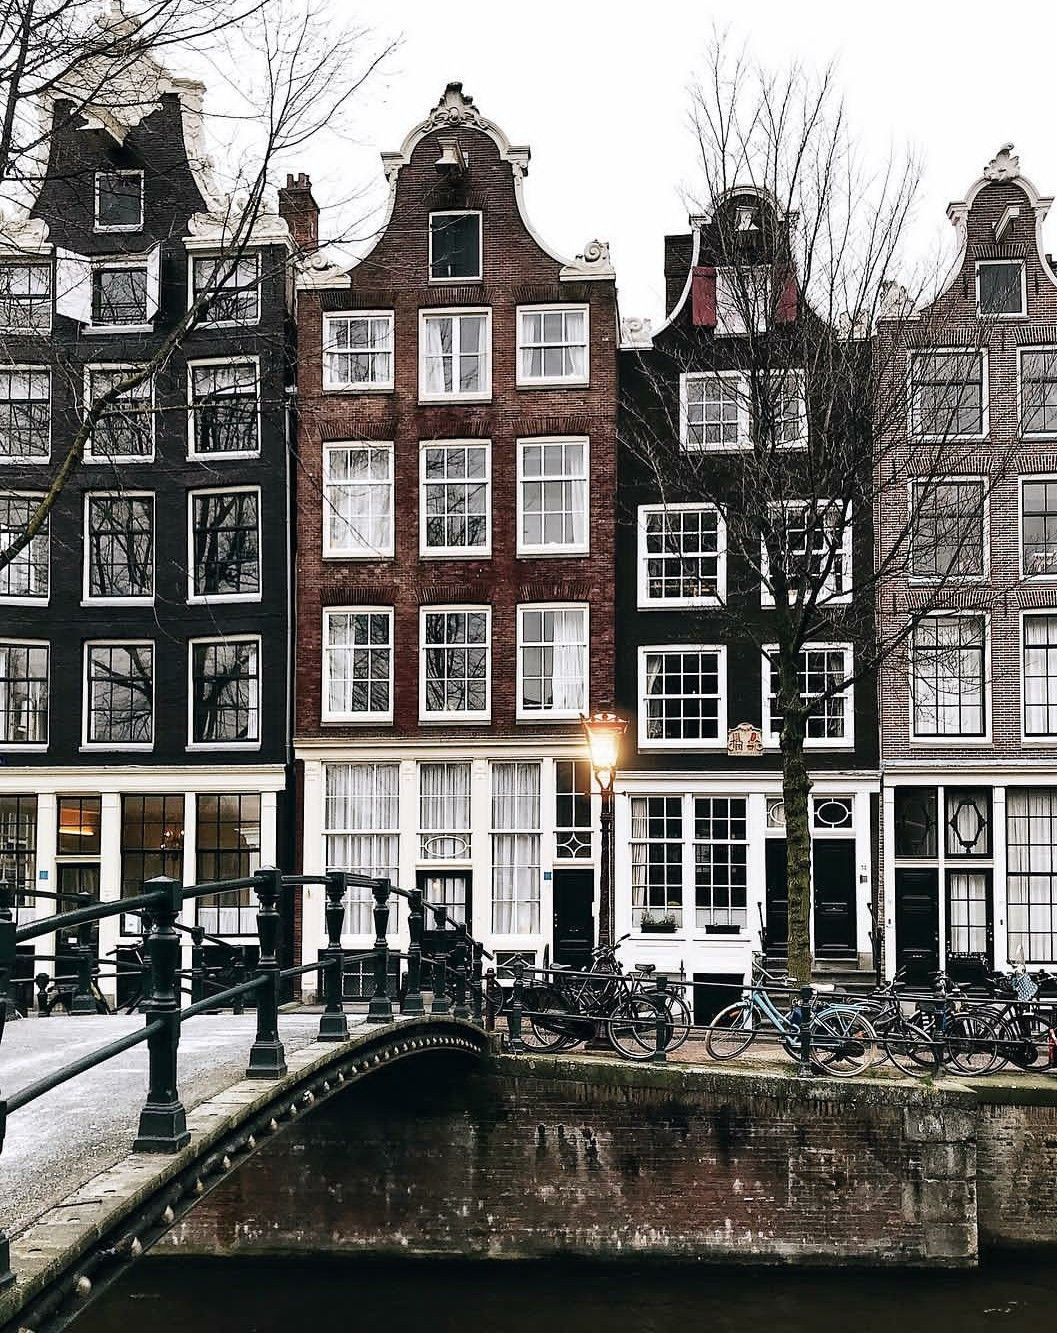 Pin By Oswaldo Neira On Nyc In 2019 Amsterdam Travel Amsterdam